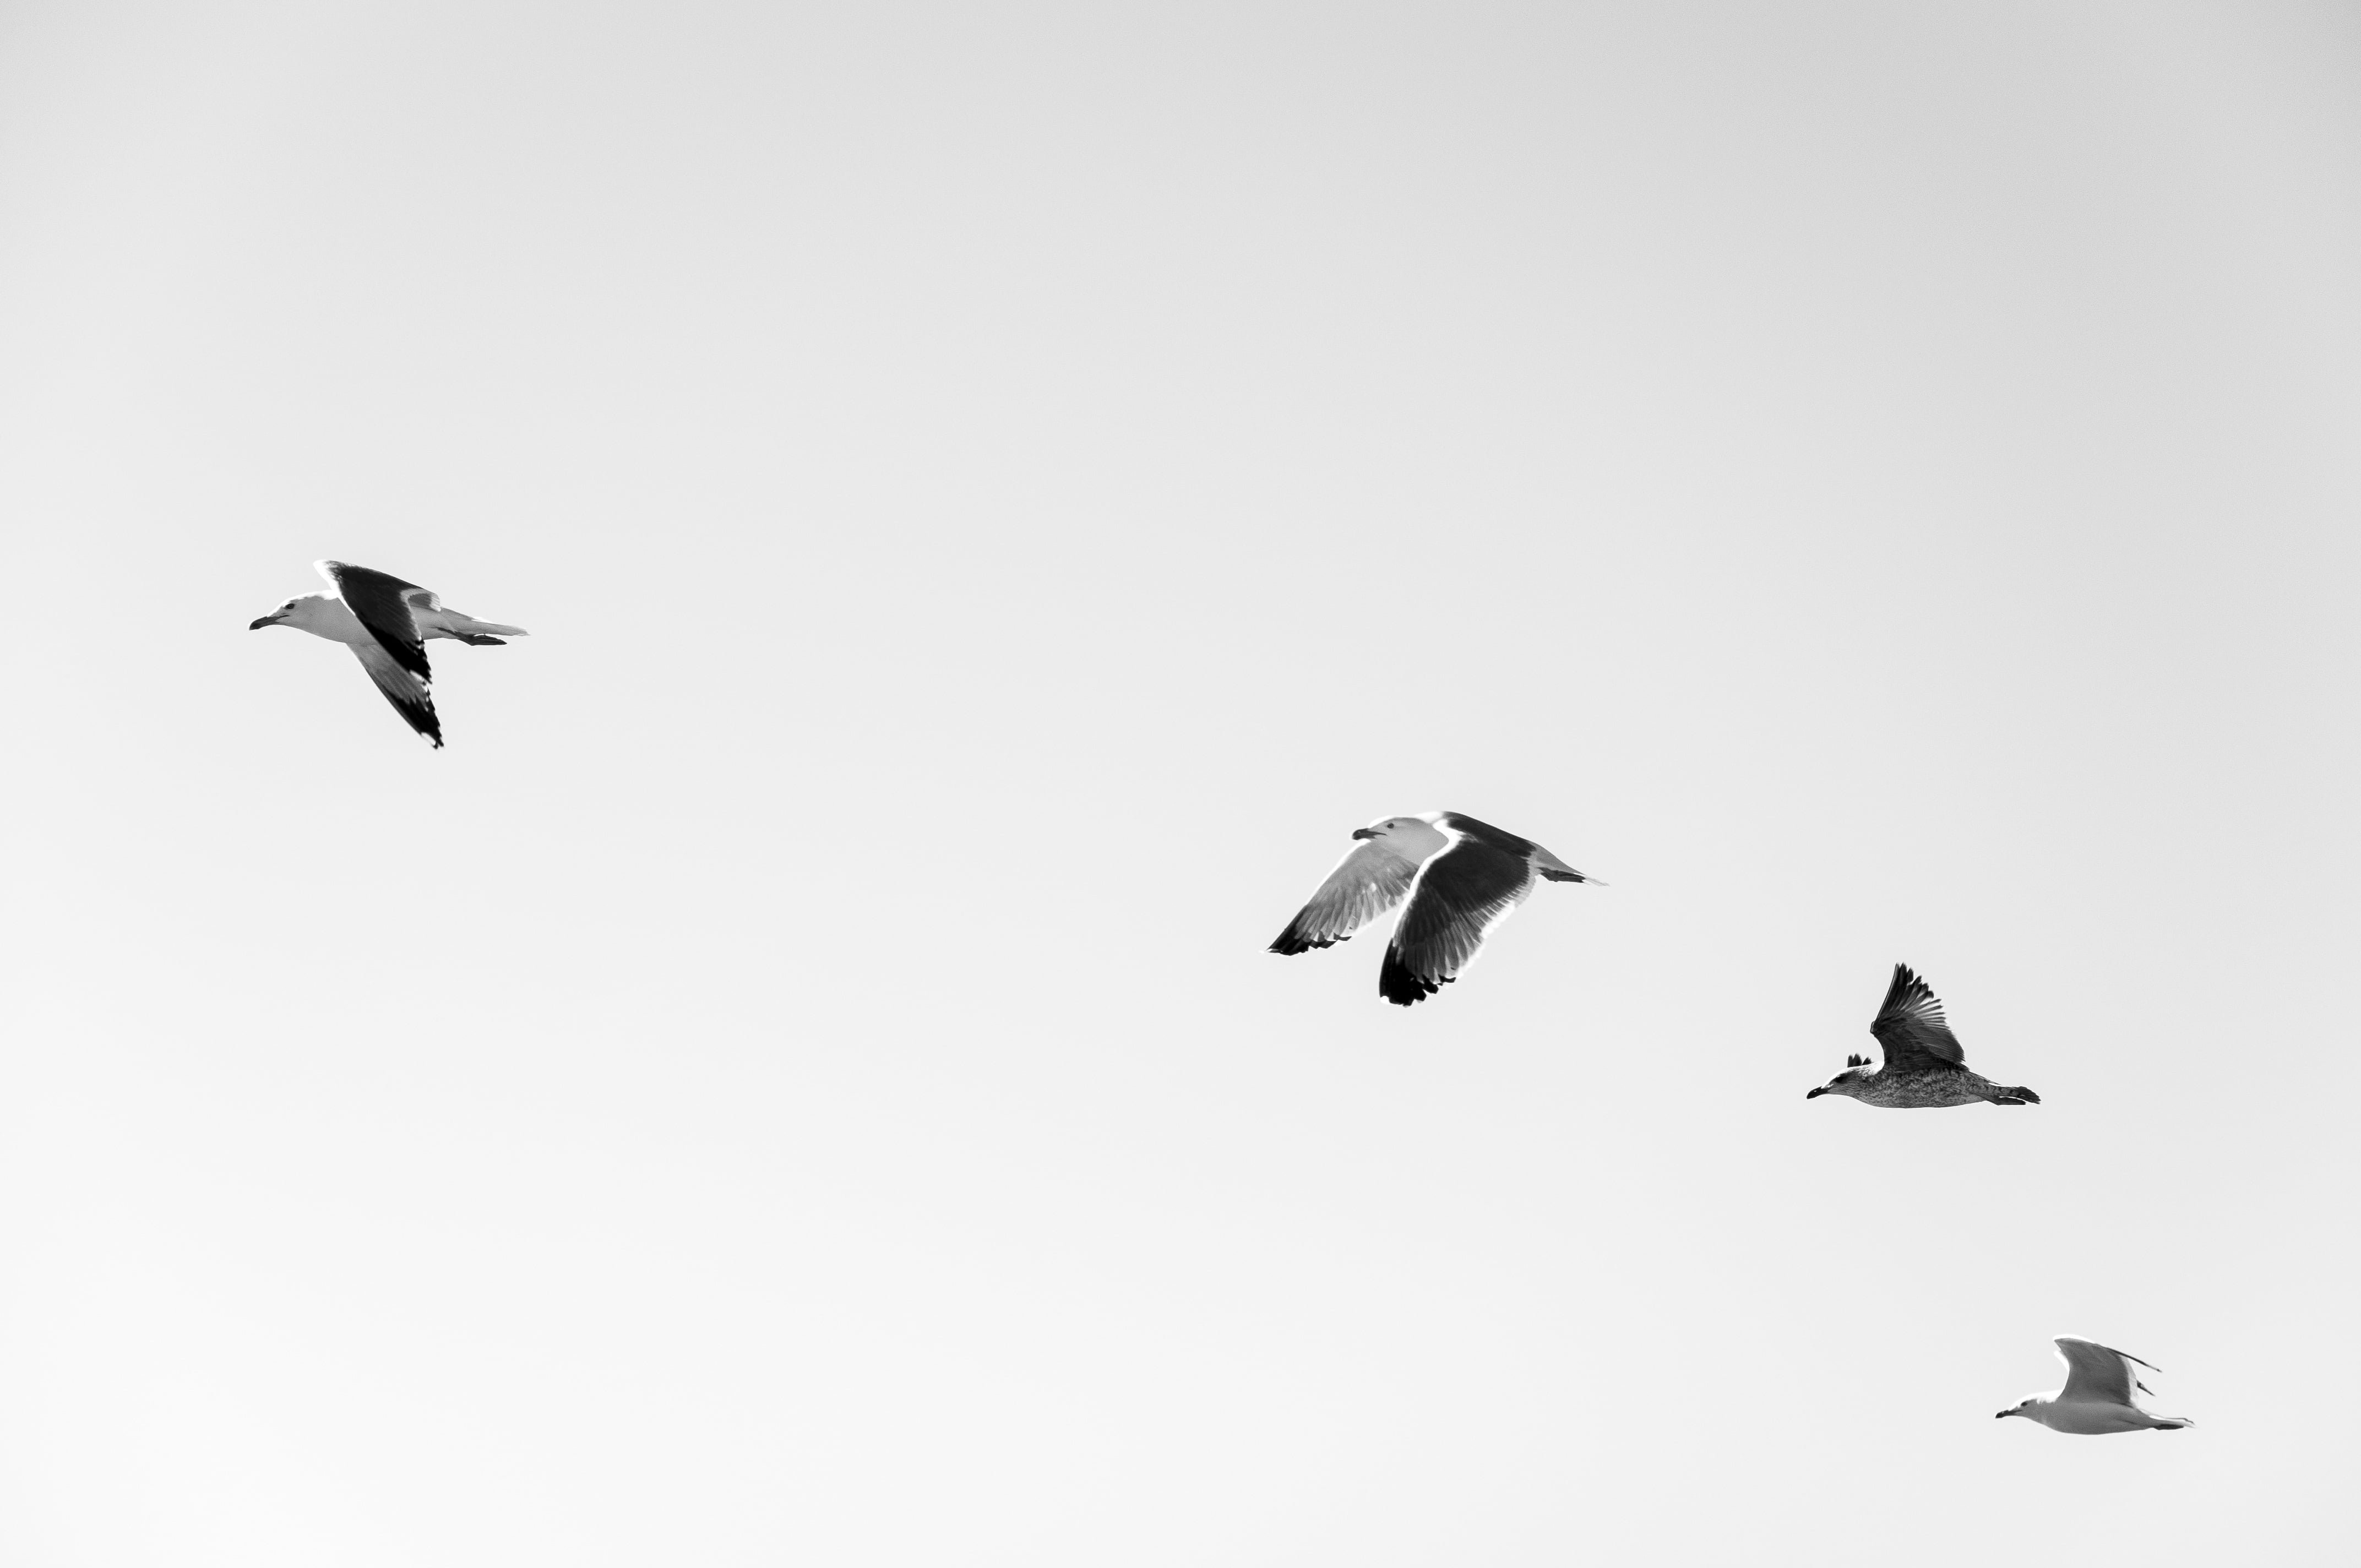 Flying Black And White Birds , HD Wallpaper & Backgrounds